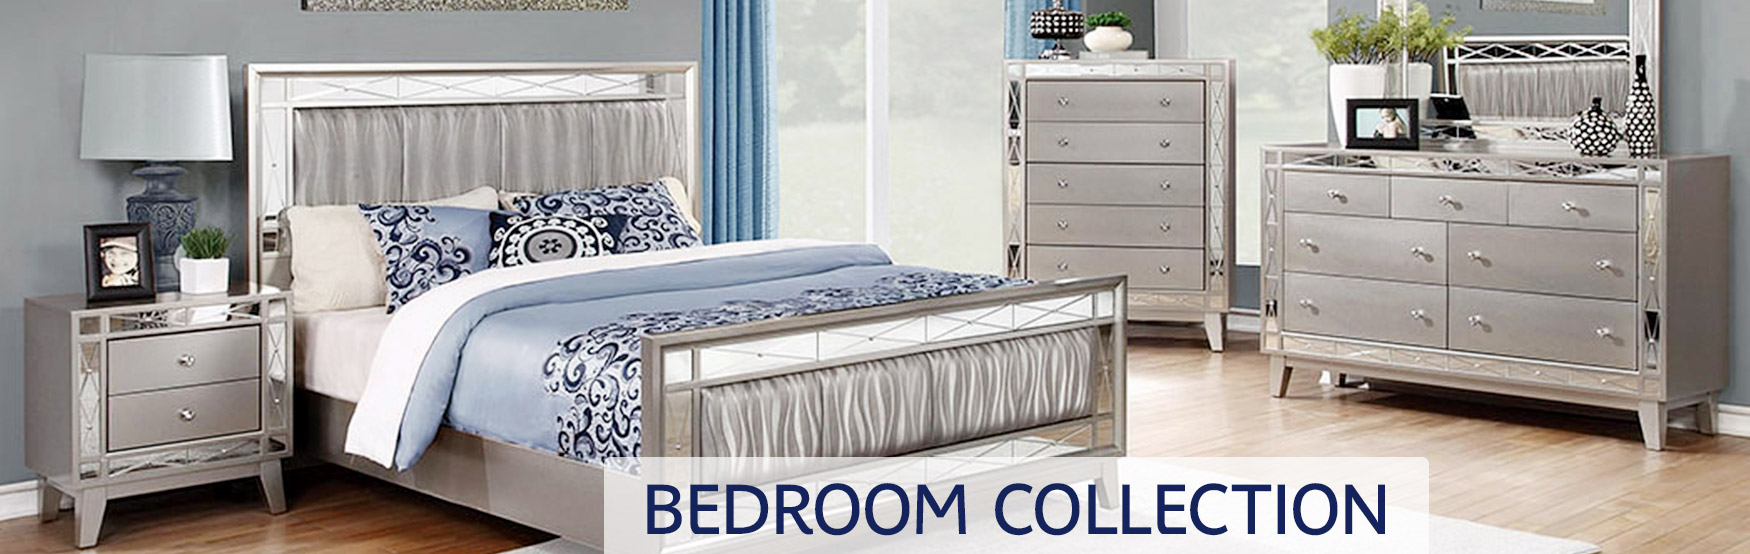 Bedroom Collections Banner